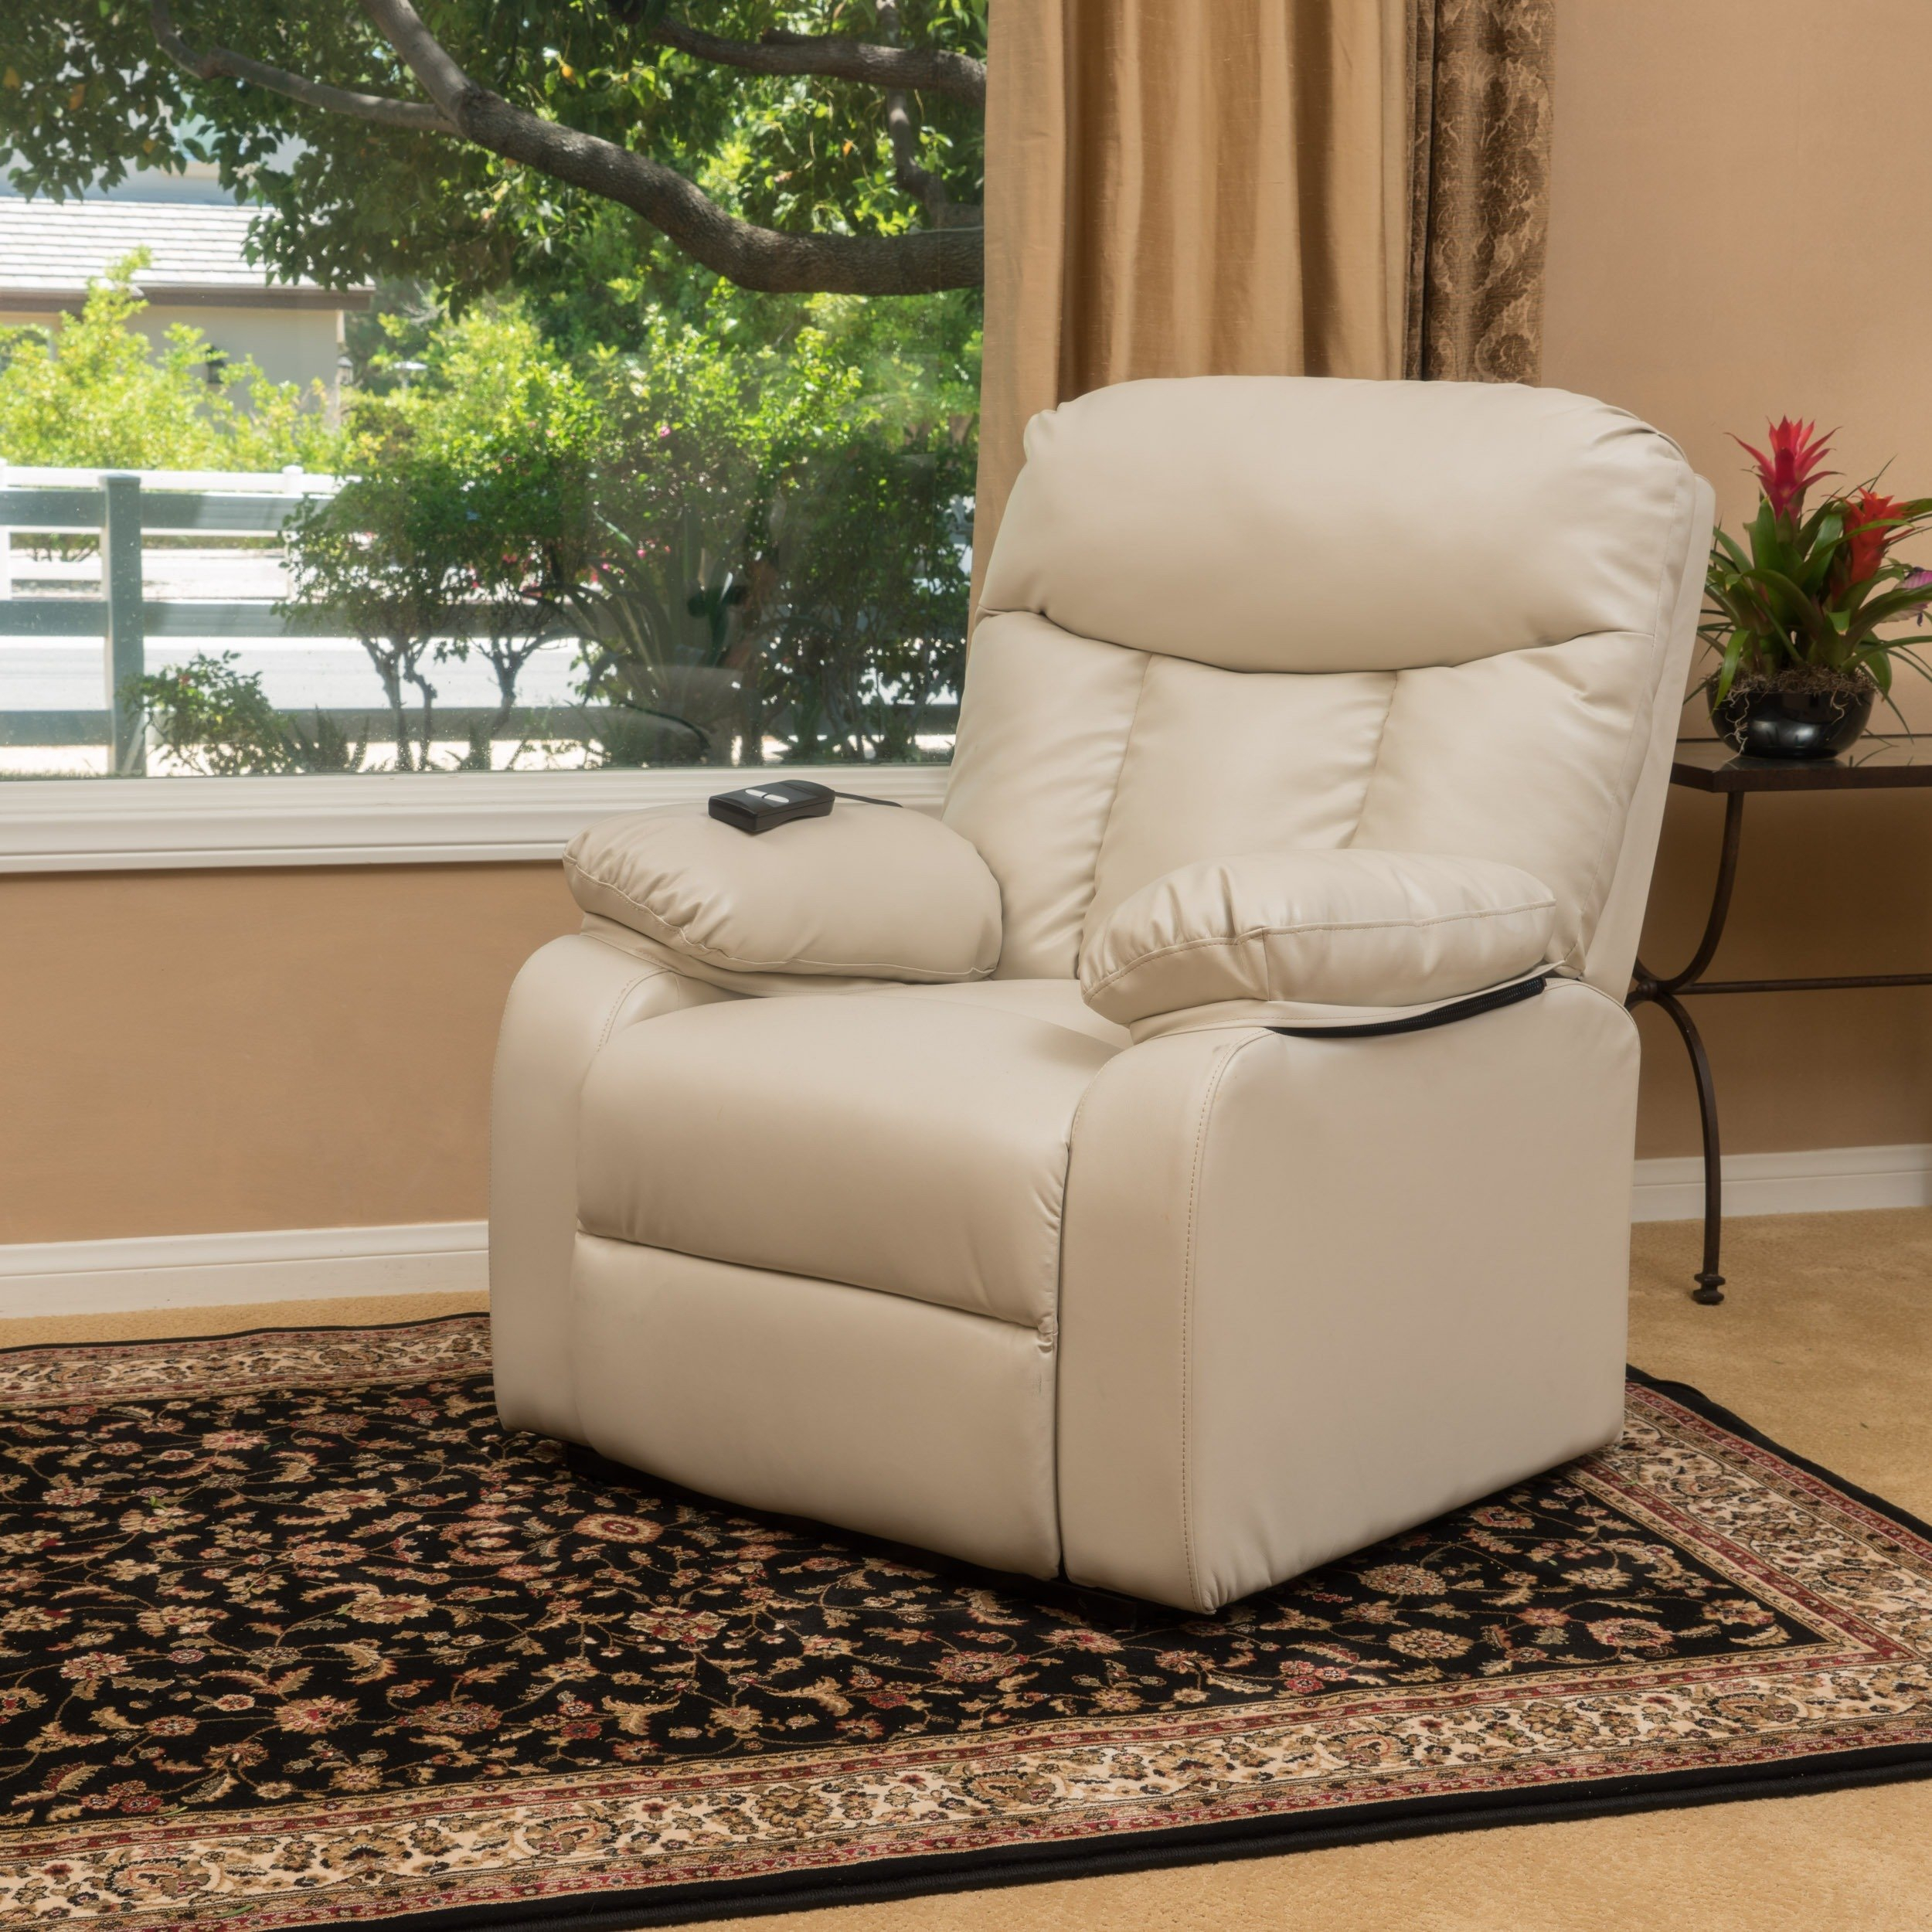 Buy Brown Christopher Knight Home Living Room Chairs Online At In Dale Iii Polyurethane Swivel Glider Recliners (View 25 of 25)